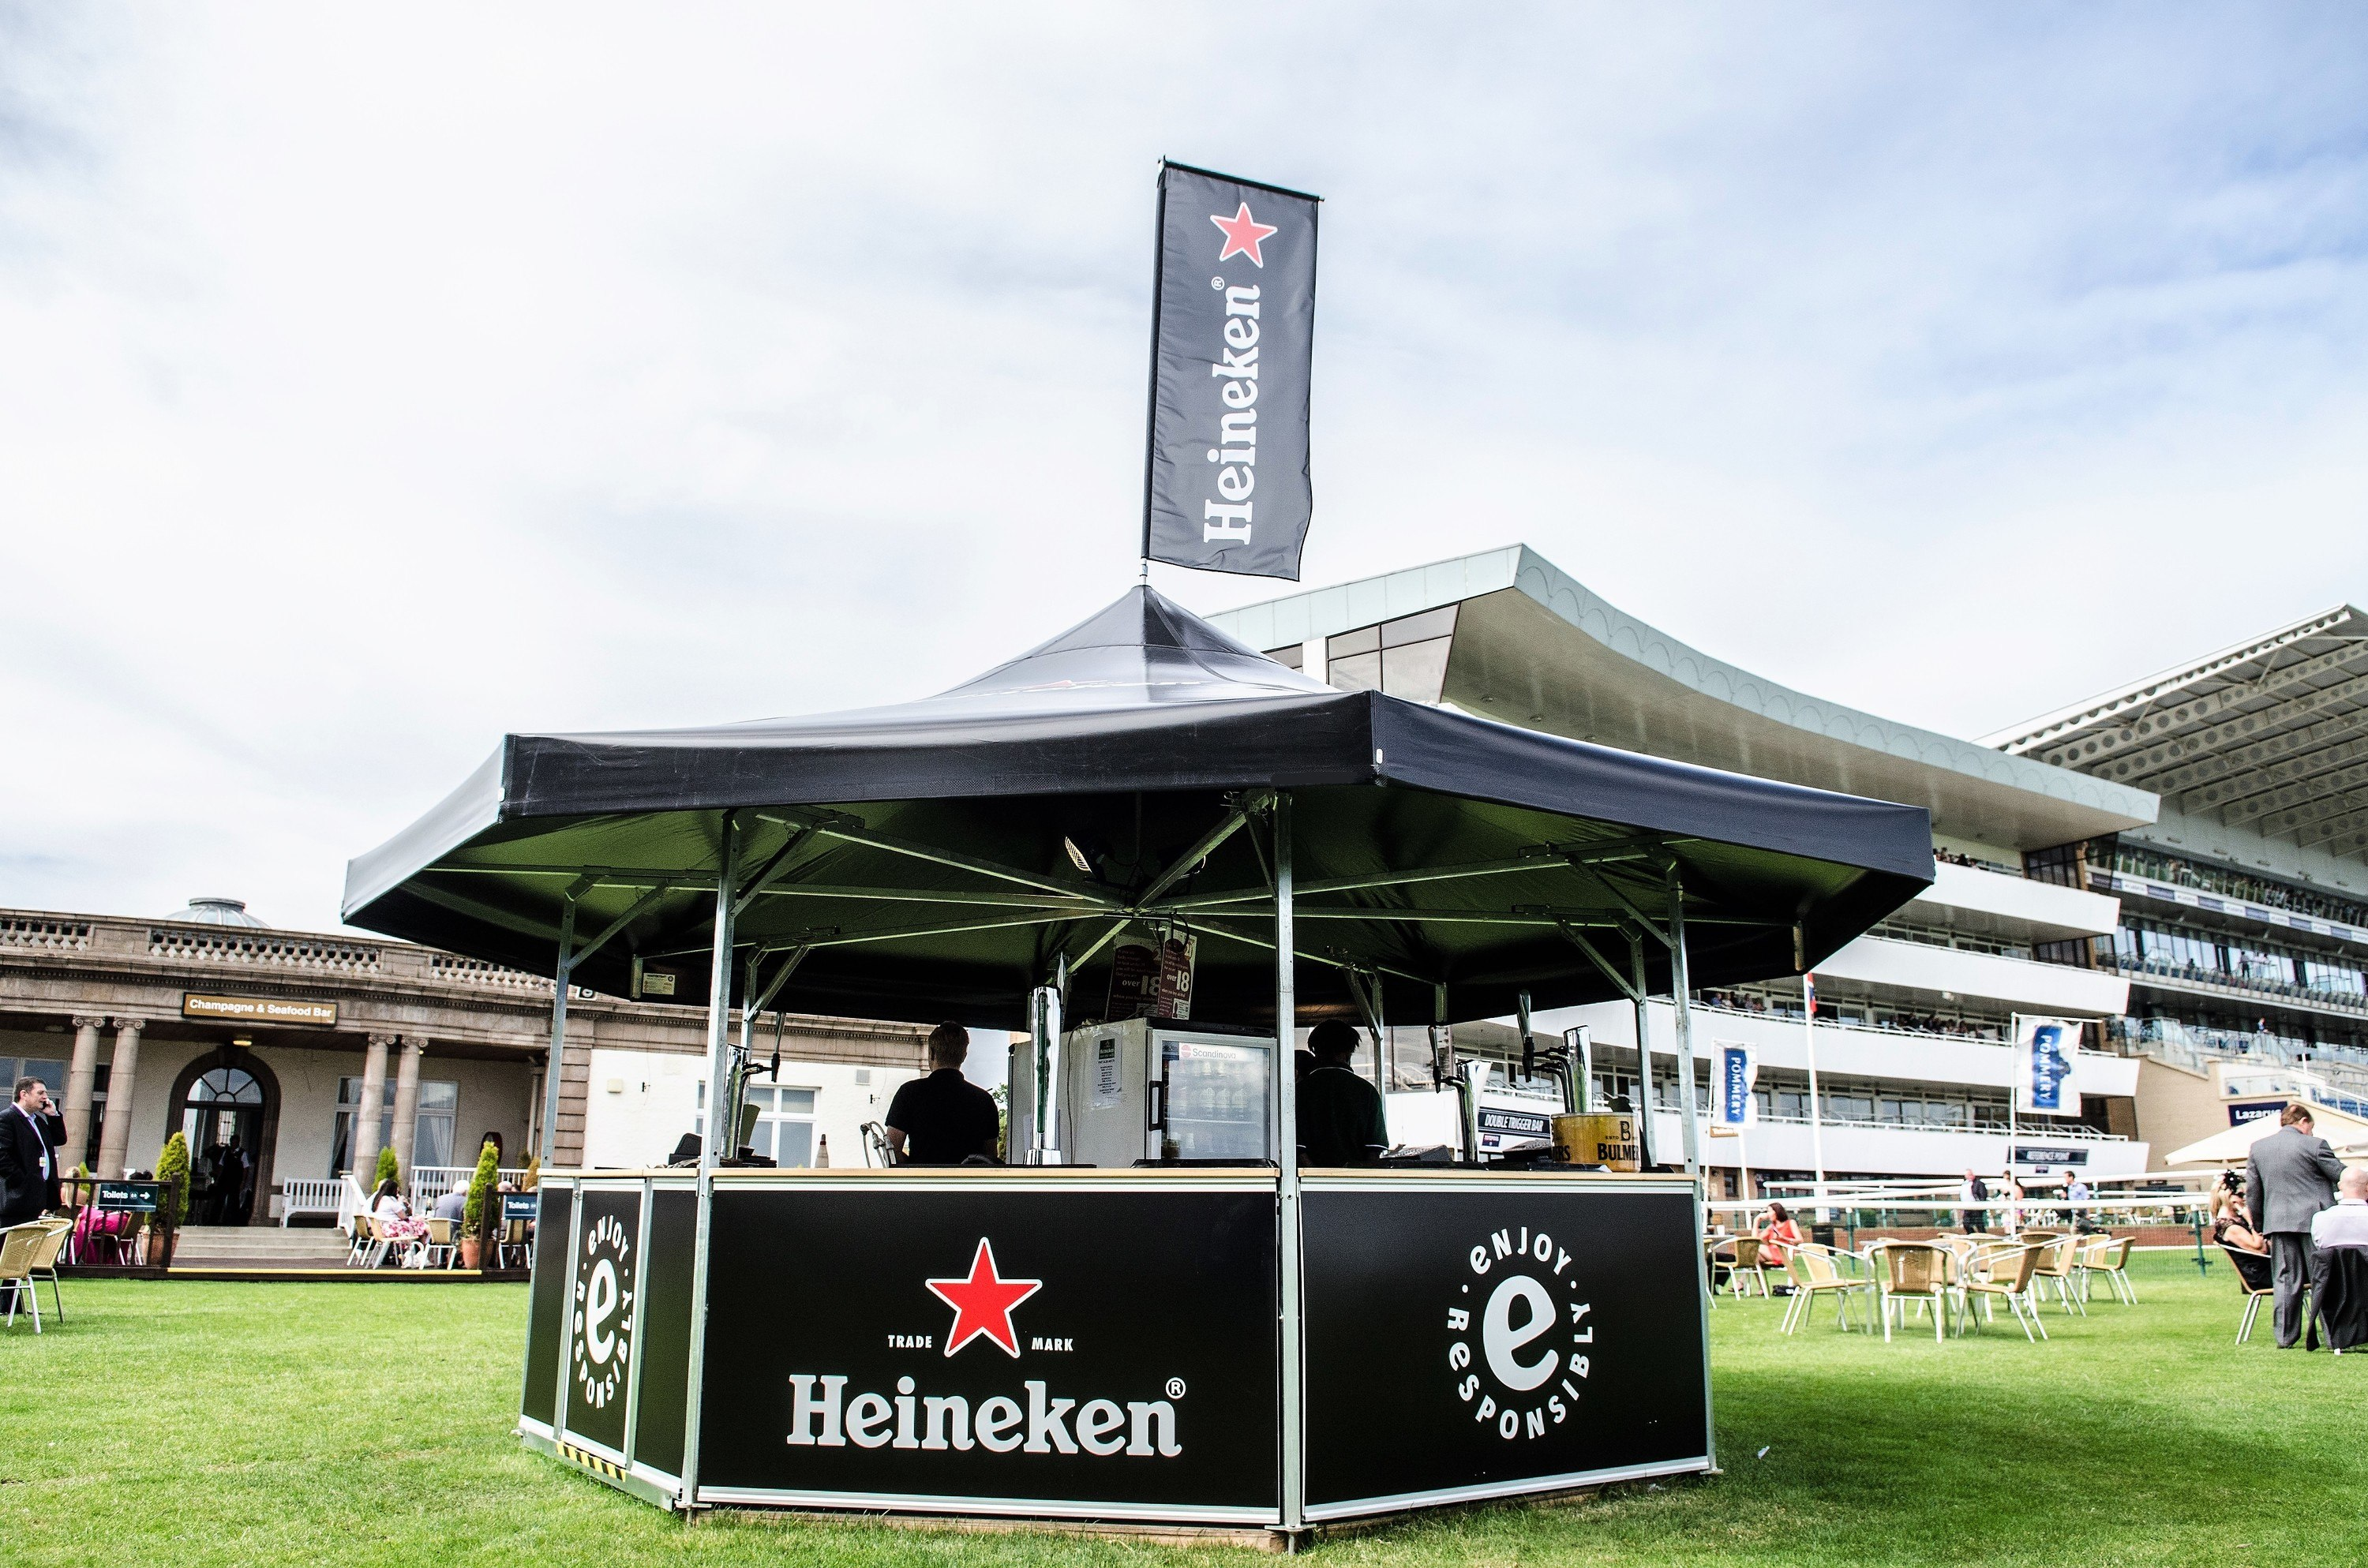 <p>Event, Mobile & Stadia Bars – Tents & Marquees – Pavilion Bars – Octagonal Bar</p> <p> </p> <p>Ideally suited as an outdoor event bar at sporting venues including racecourses, cricket grounds etc.  Also suitable as a retail outlet for selling merchandise at music festivals, exhibitions etc.</p>